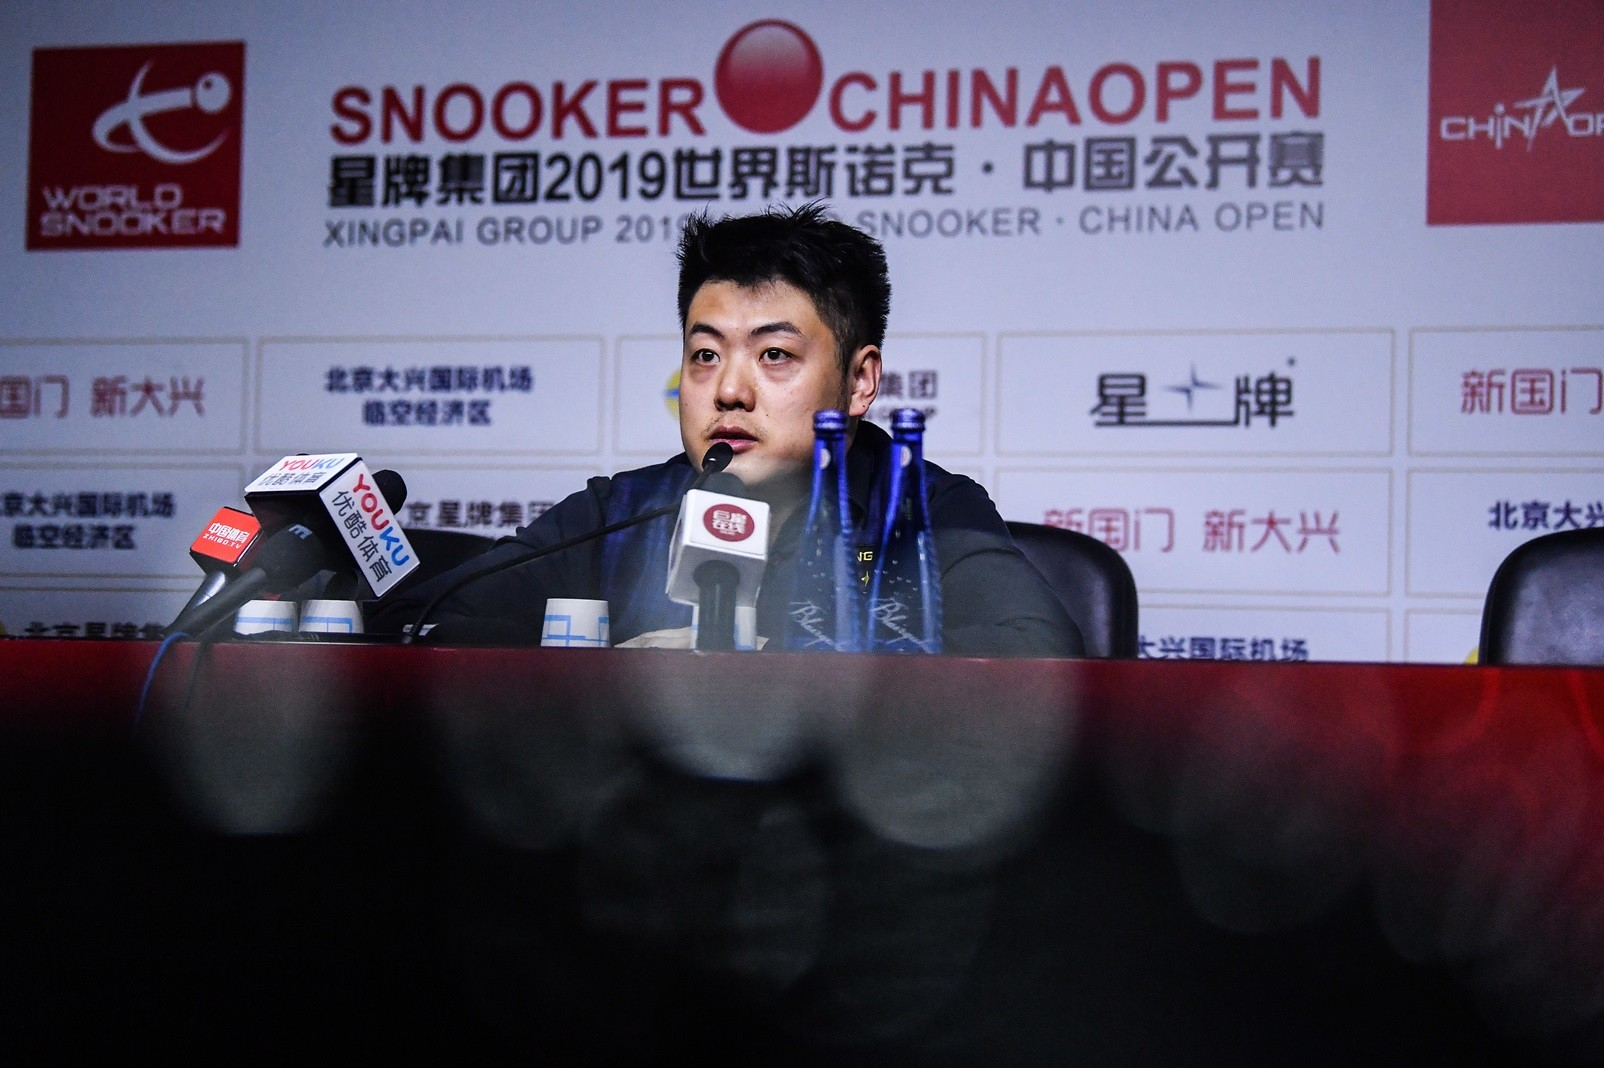 China Open Snooker 2020